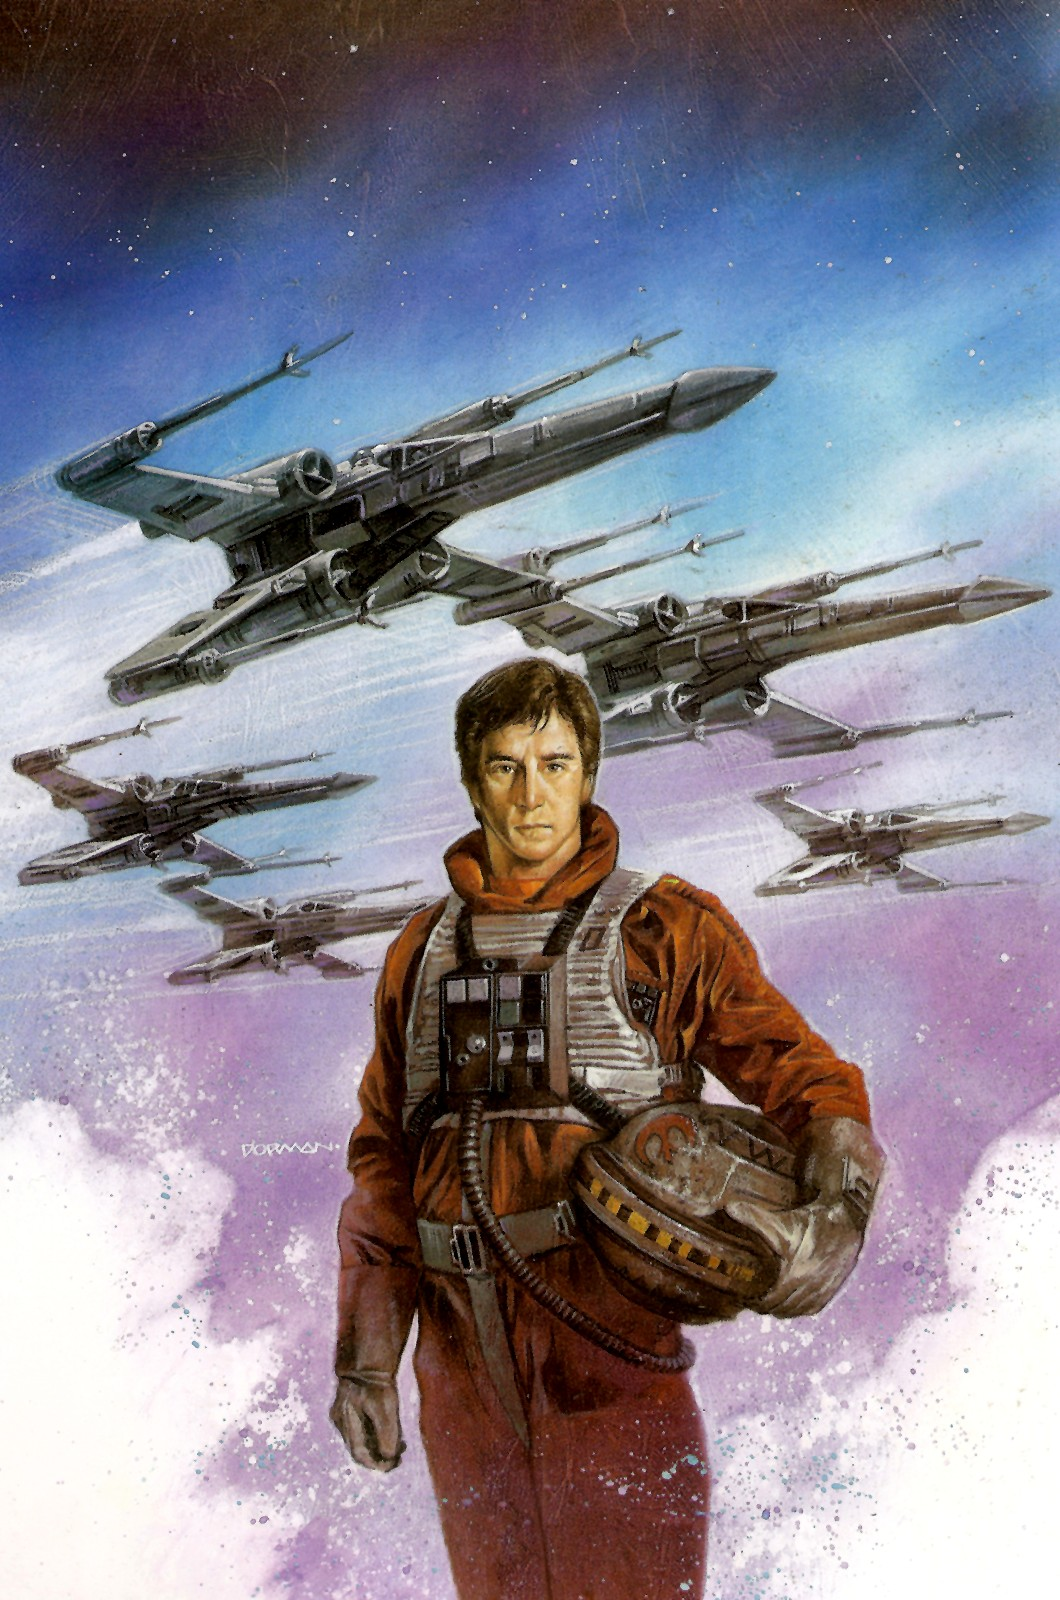 Wedge Antilles and Rogue Squadron